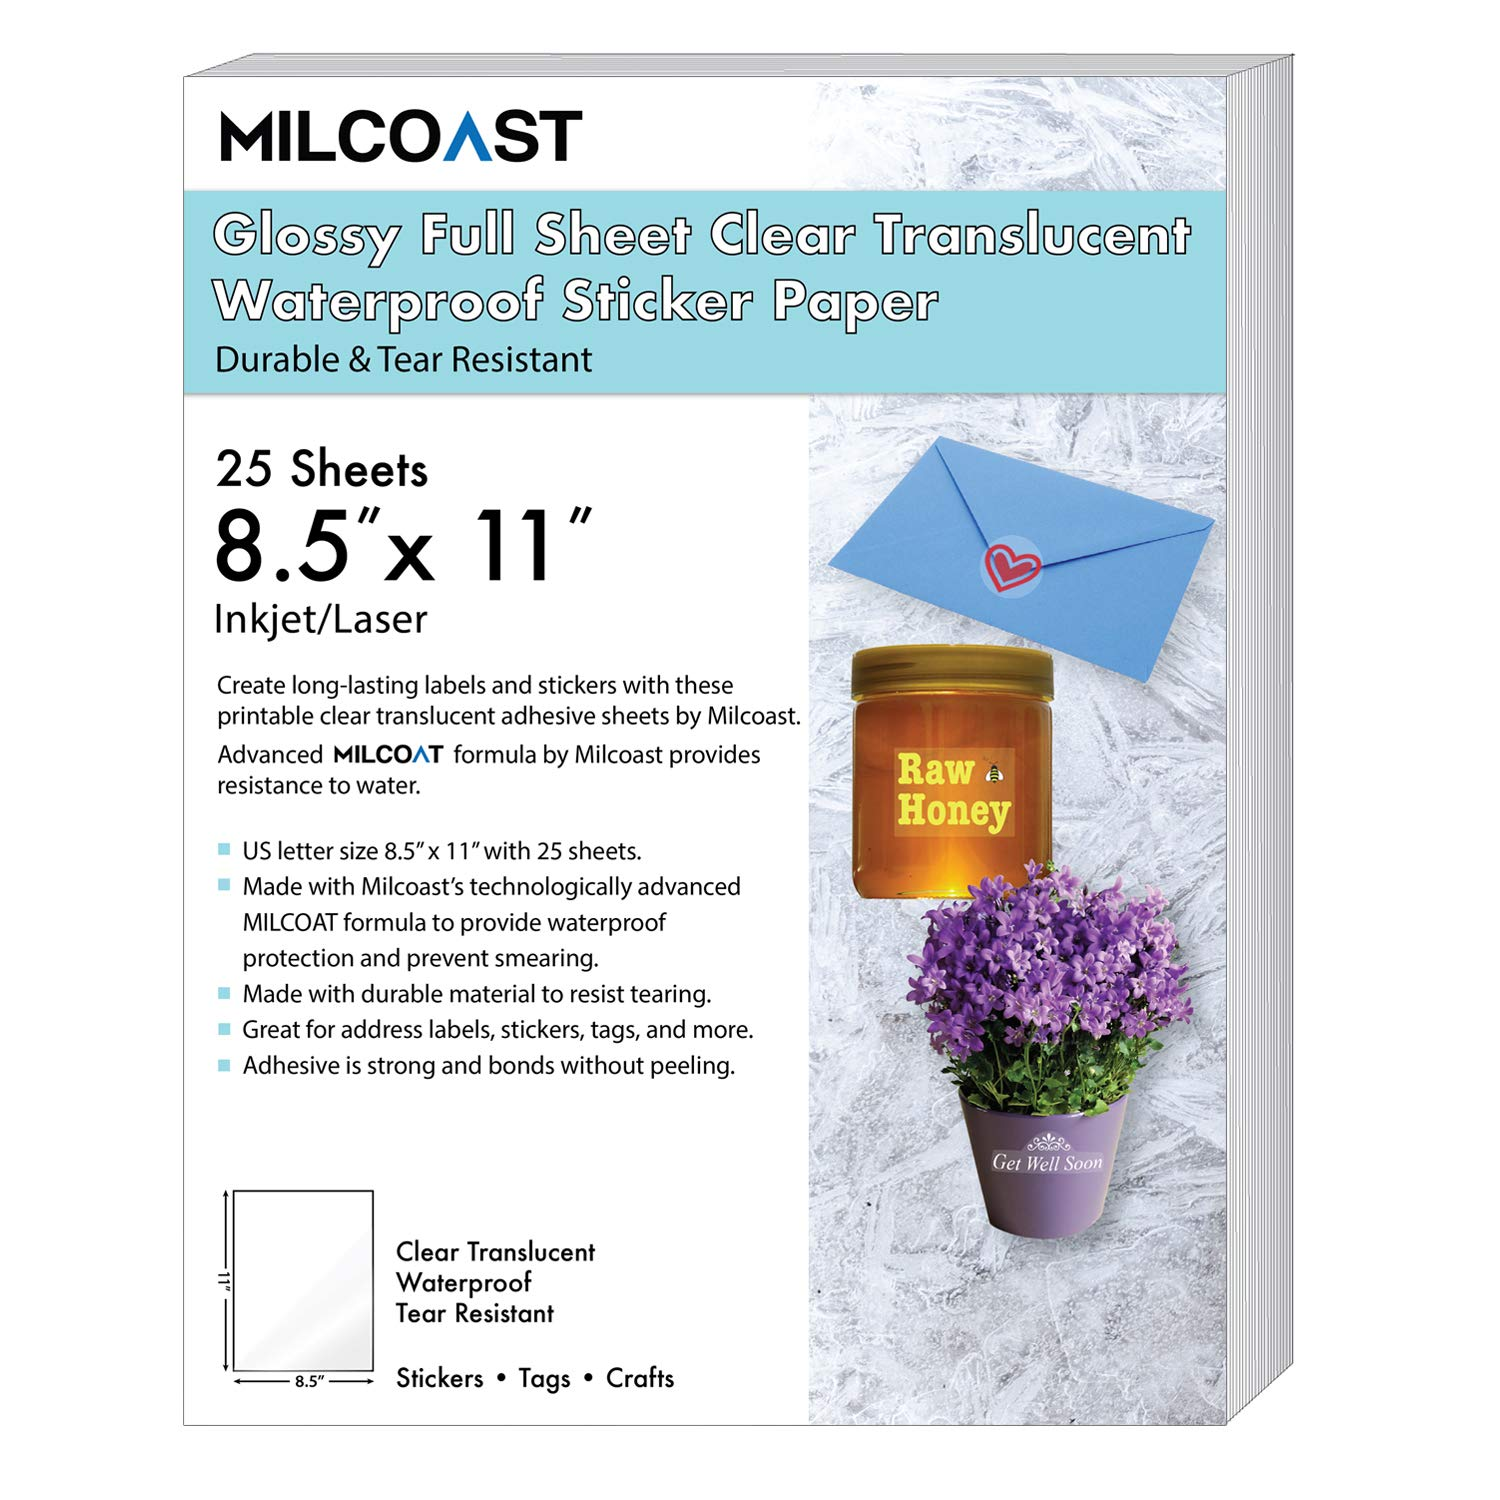 Milcoast Glossy Full Sheet 8.5'' x 11'' Clear Translucent Waterproof Adhesive Sticker Paper Labels - 25 Sheets